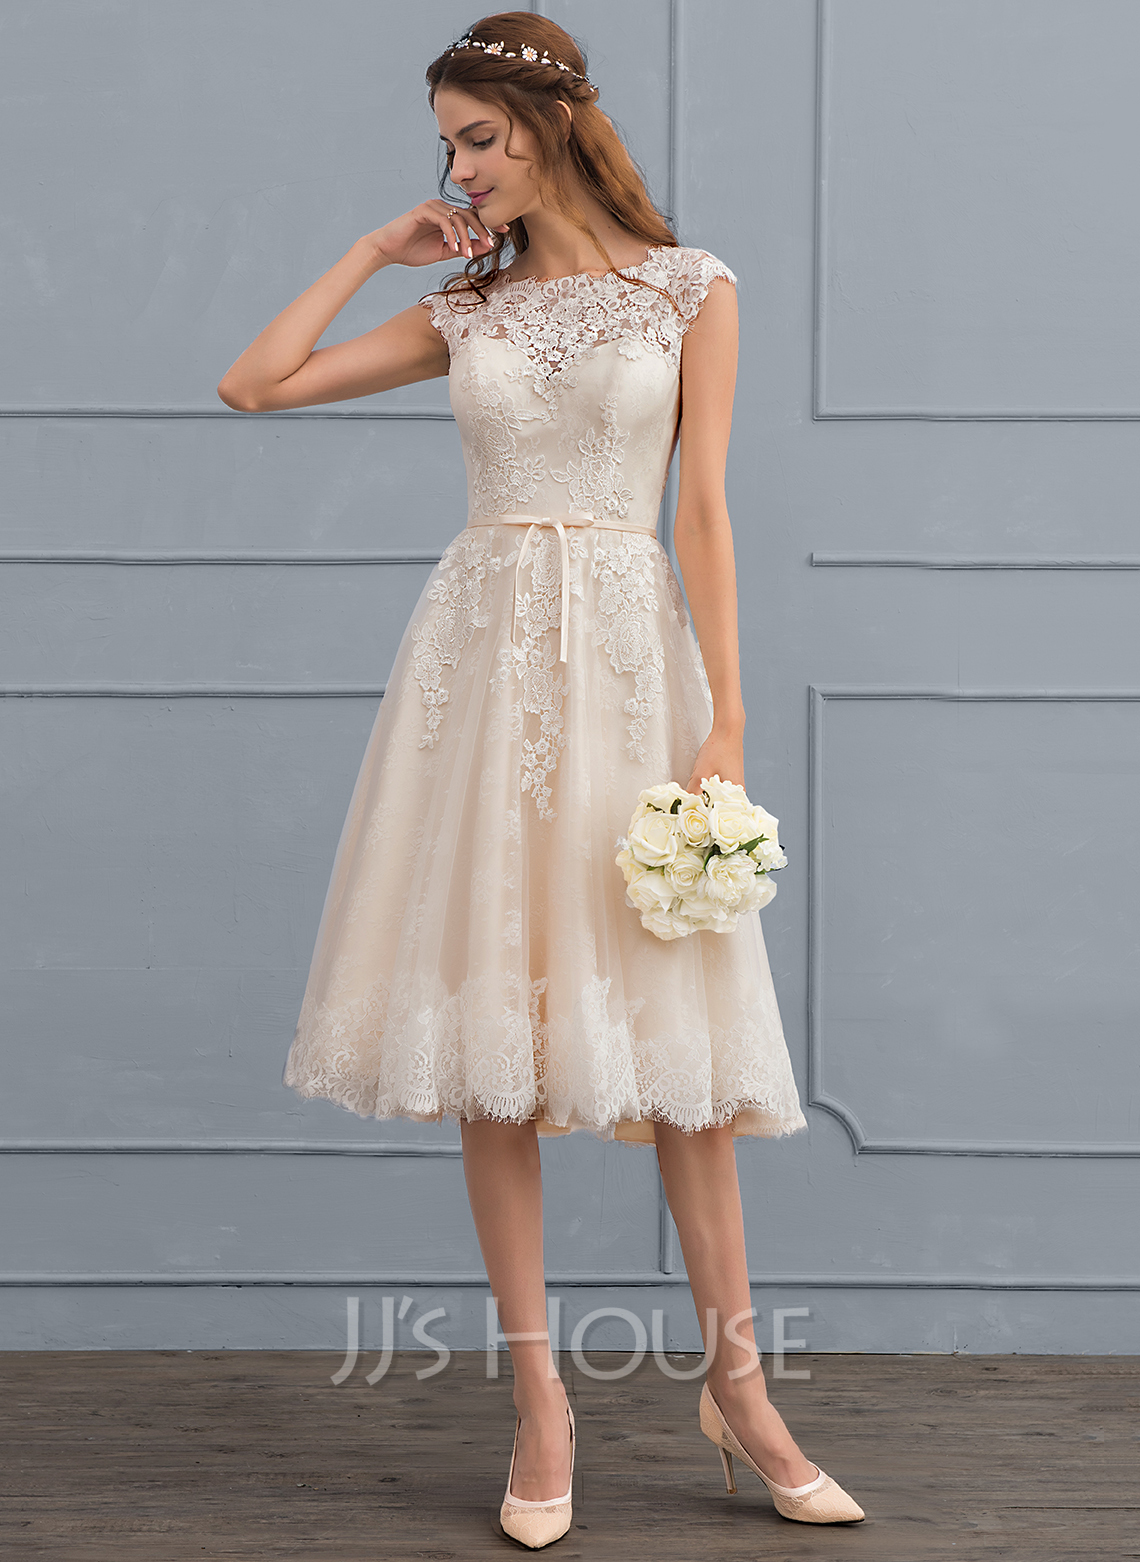 Plus size wedding dresses affordable high quality jjshouse a lineprincess scoop neck knee length tulle lace wedding dress with bow ombrellifo Images